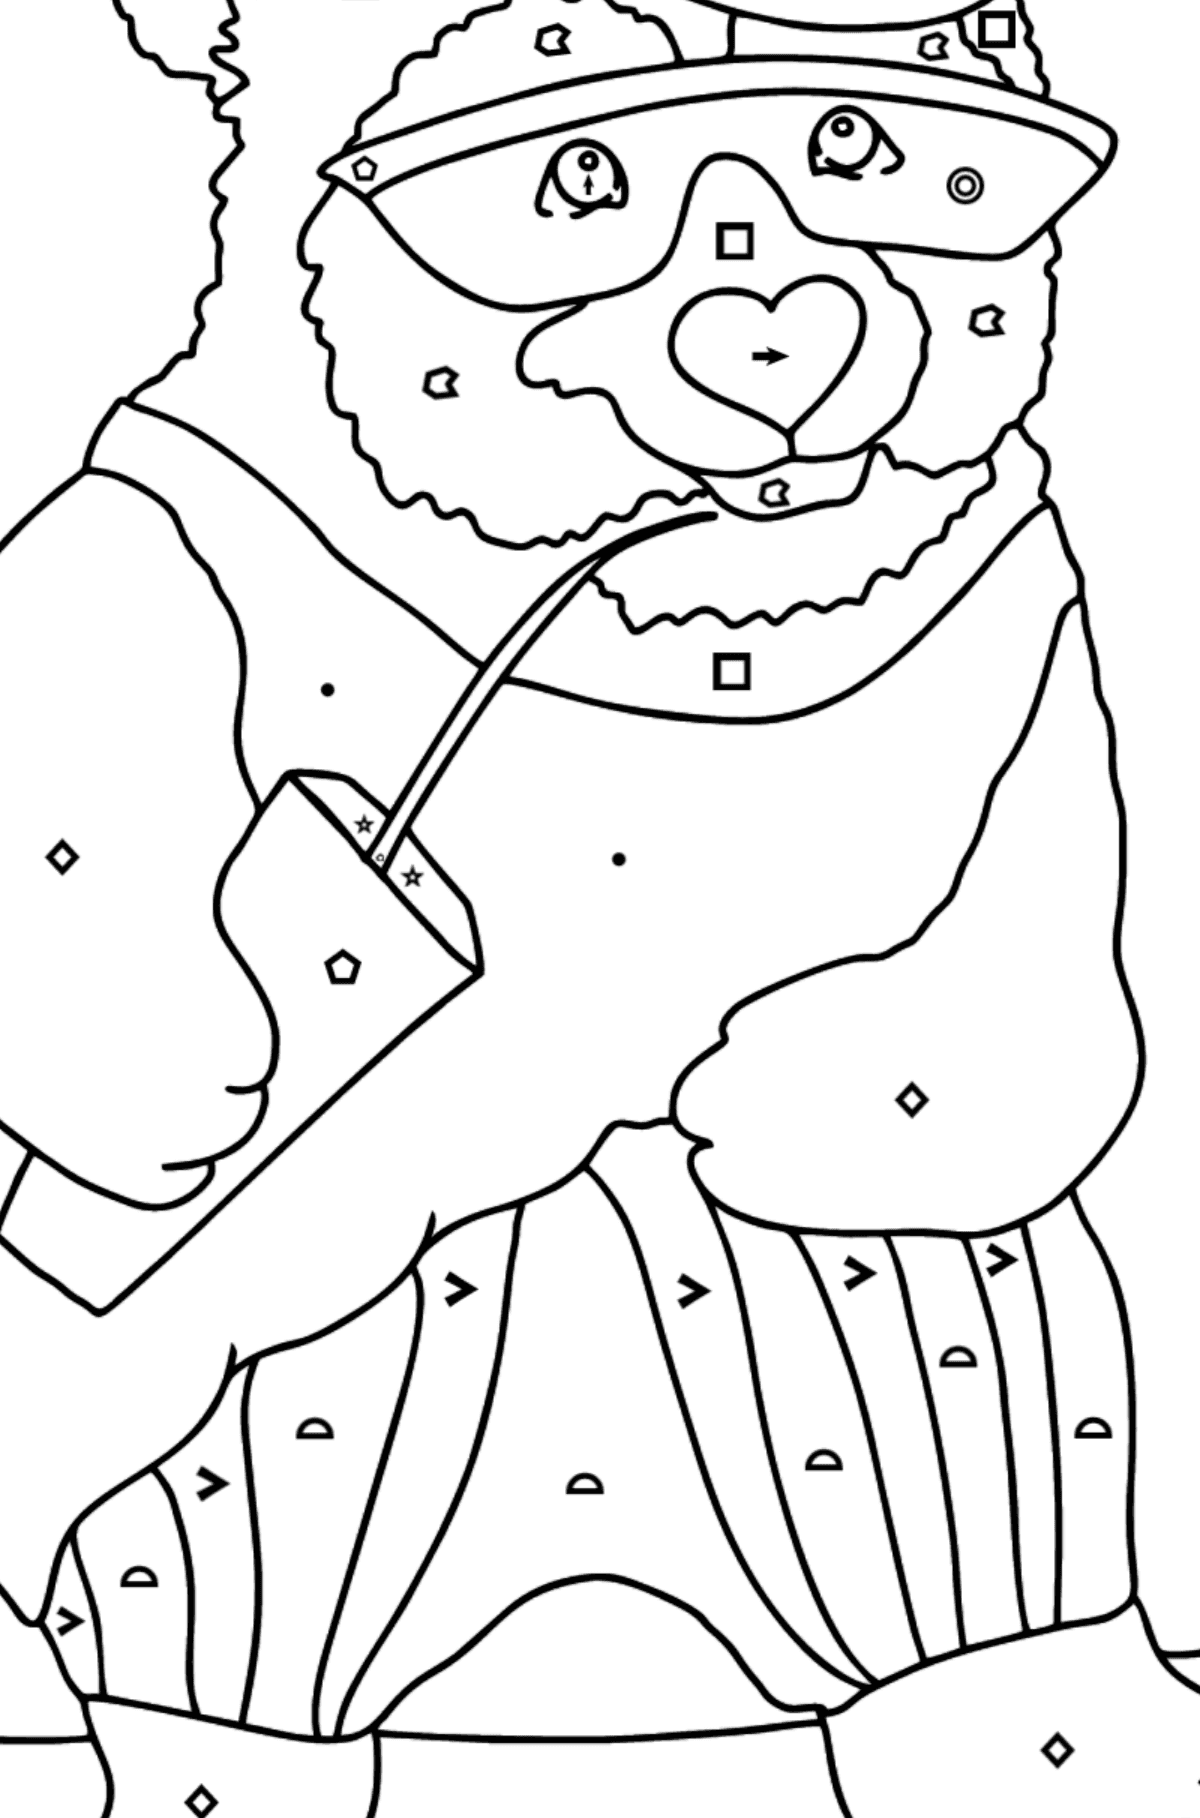 Coloring Page - A Panda in Sunglasses - Coloring by Symbols and Geometric Shapes for Kids